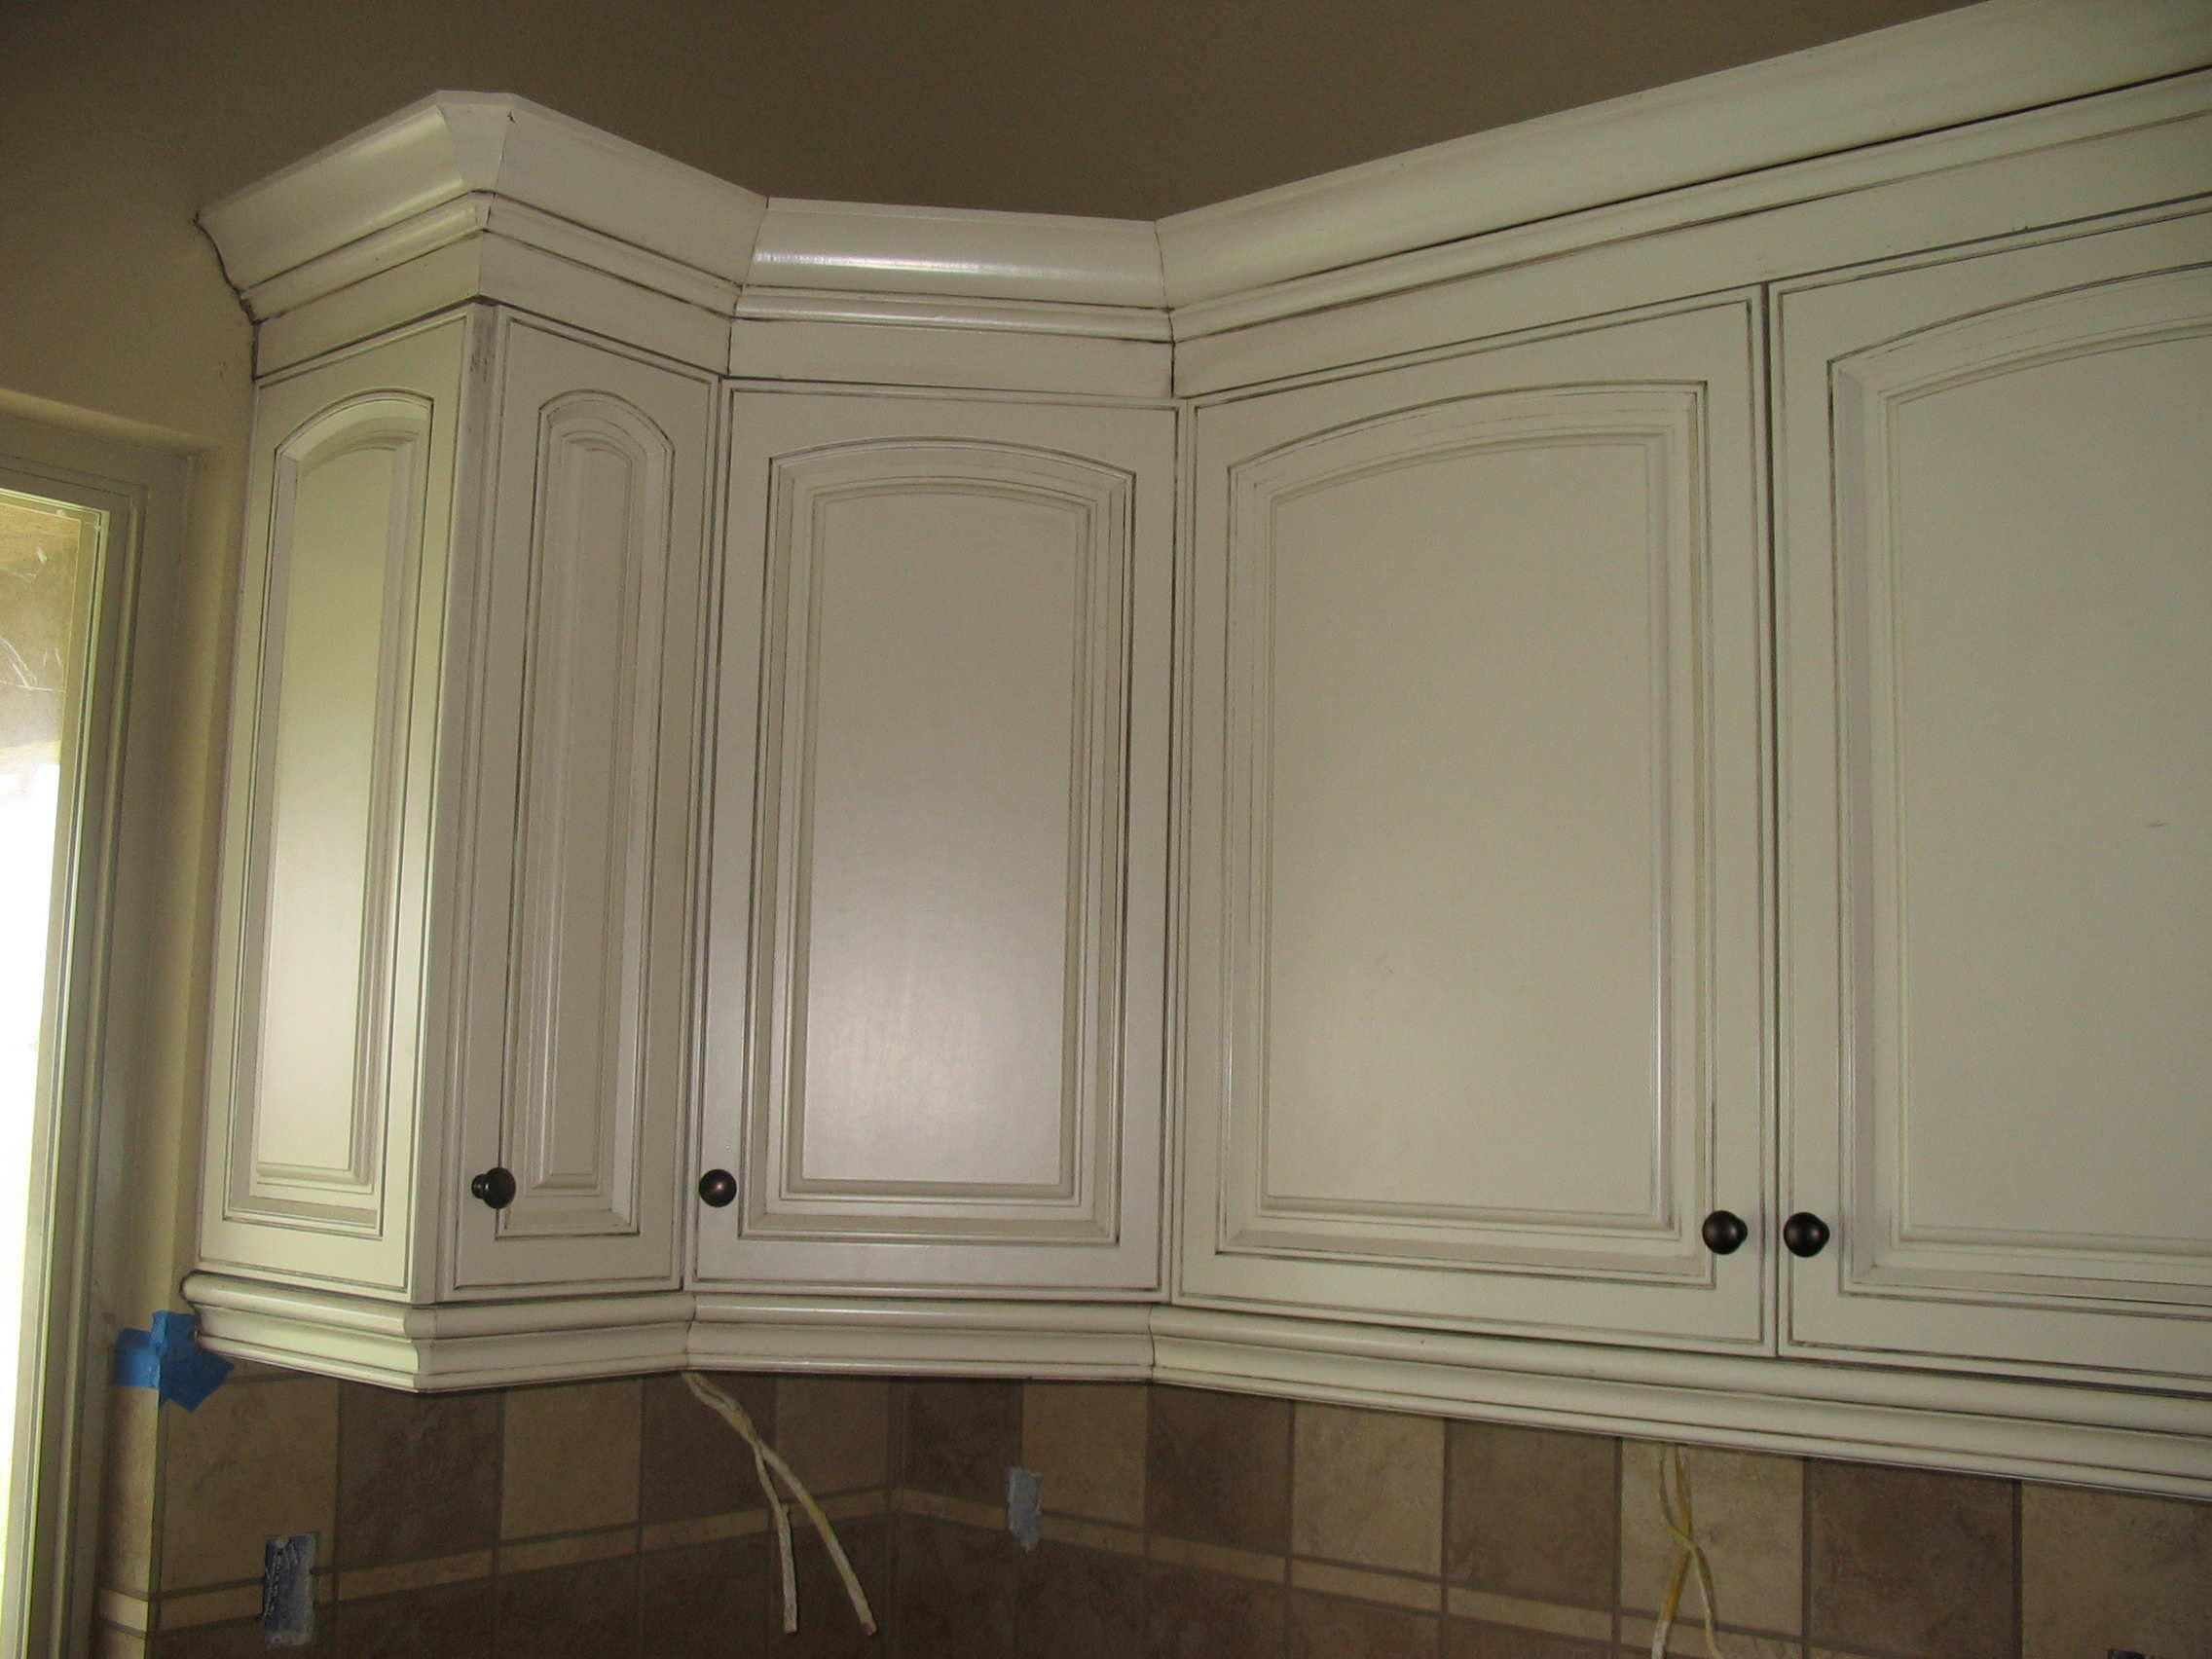 Kitchen Cabinets Java Color images of cabinets stained white | justdotchristina » blog archive